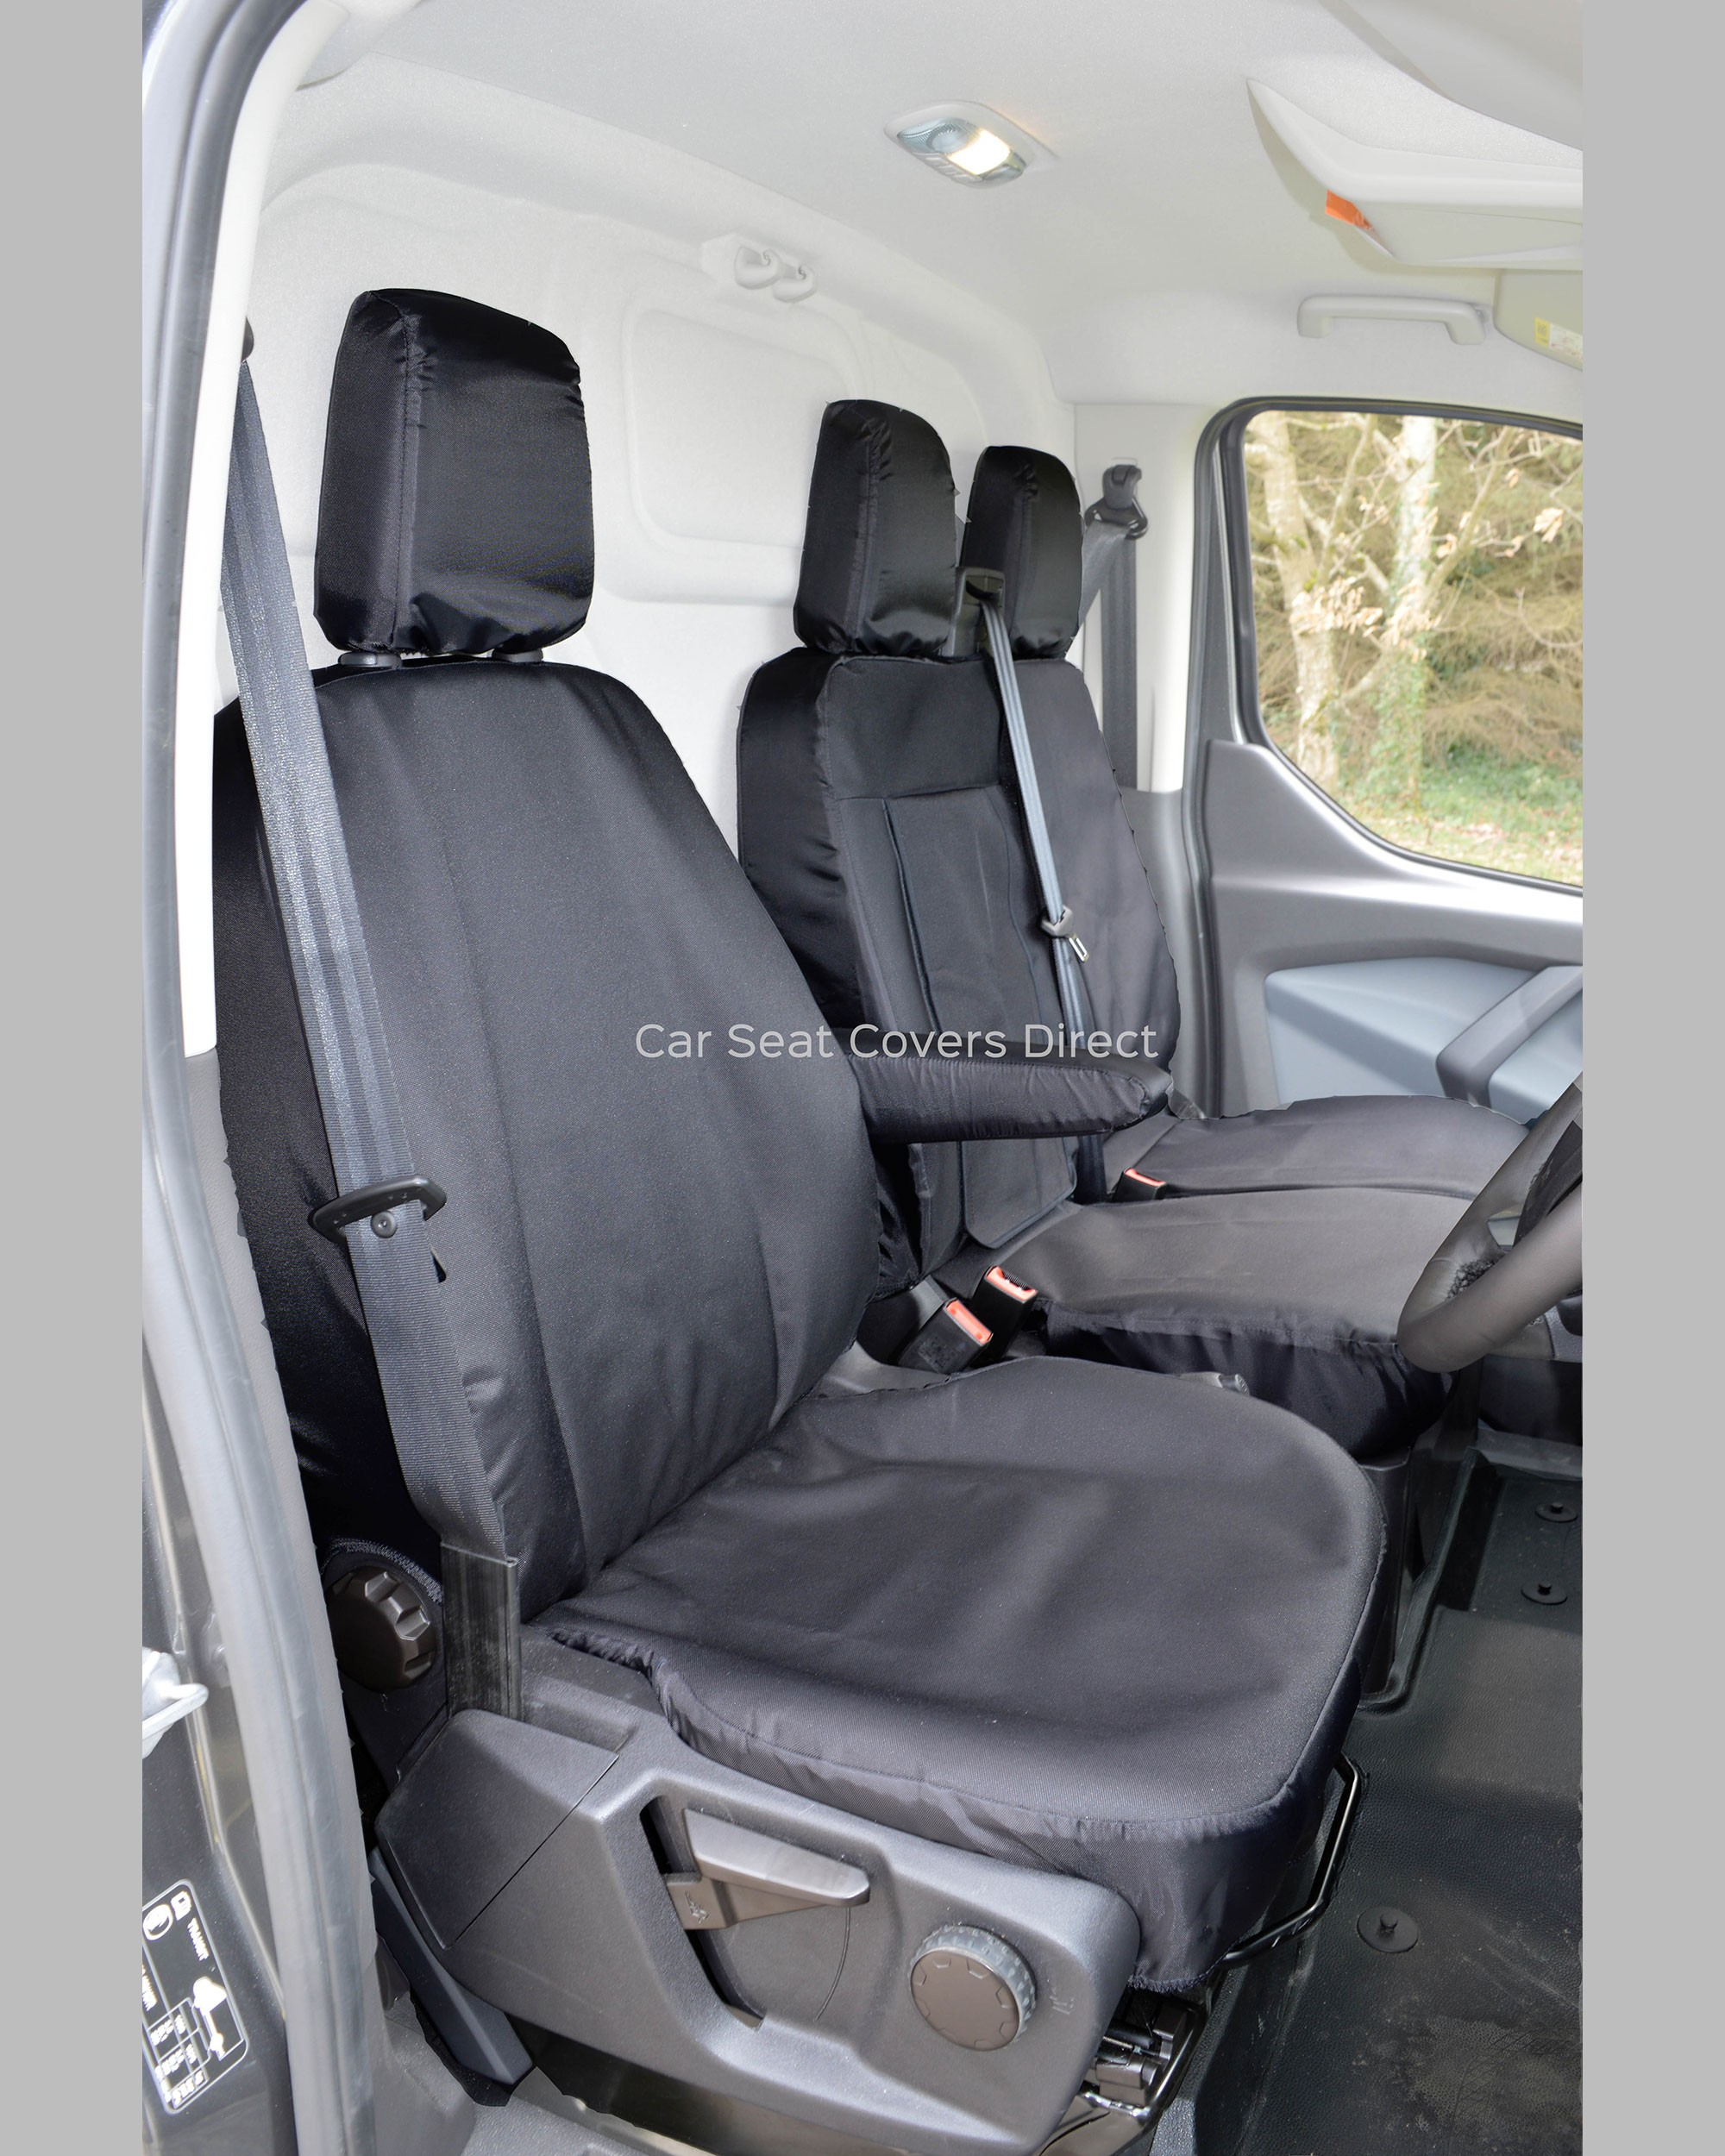 Ford Transit Custom Heavy Duty Seat Covers - Drivers seat